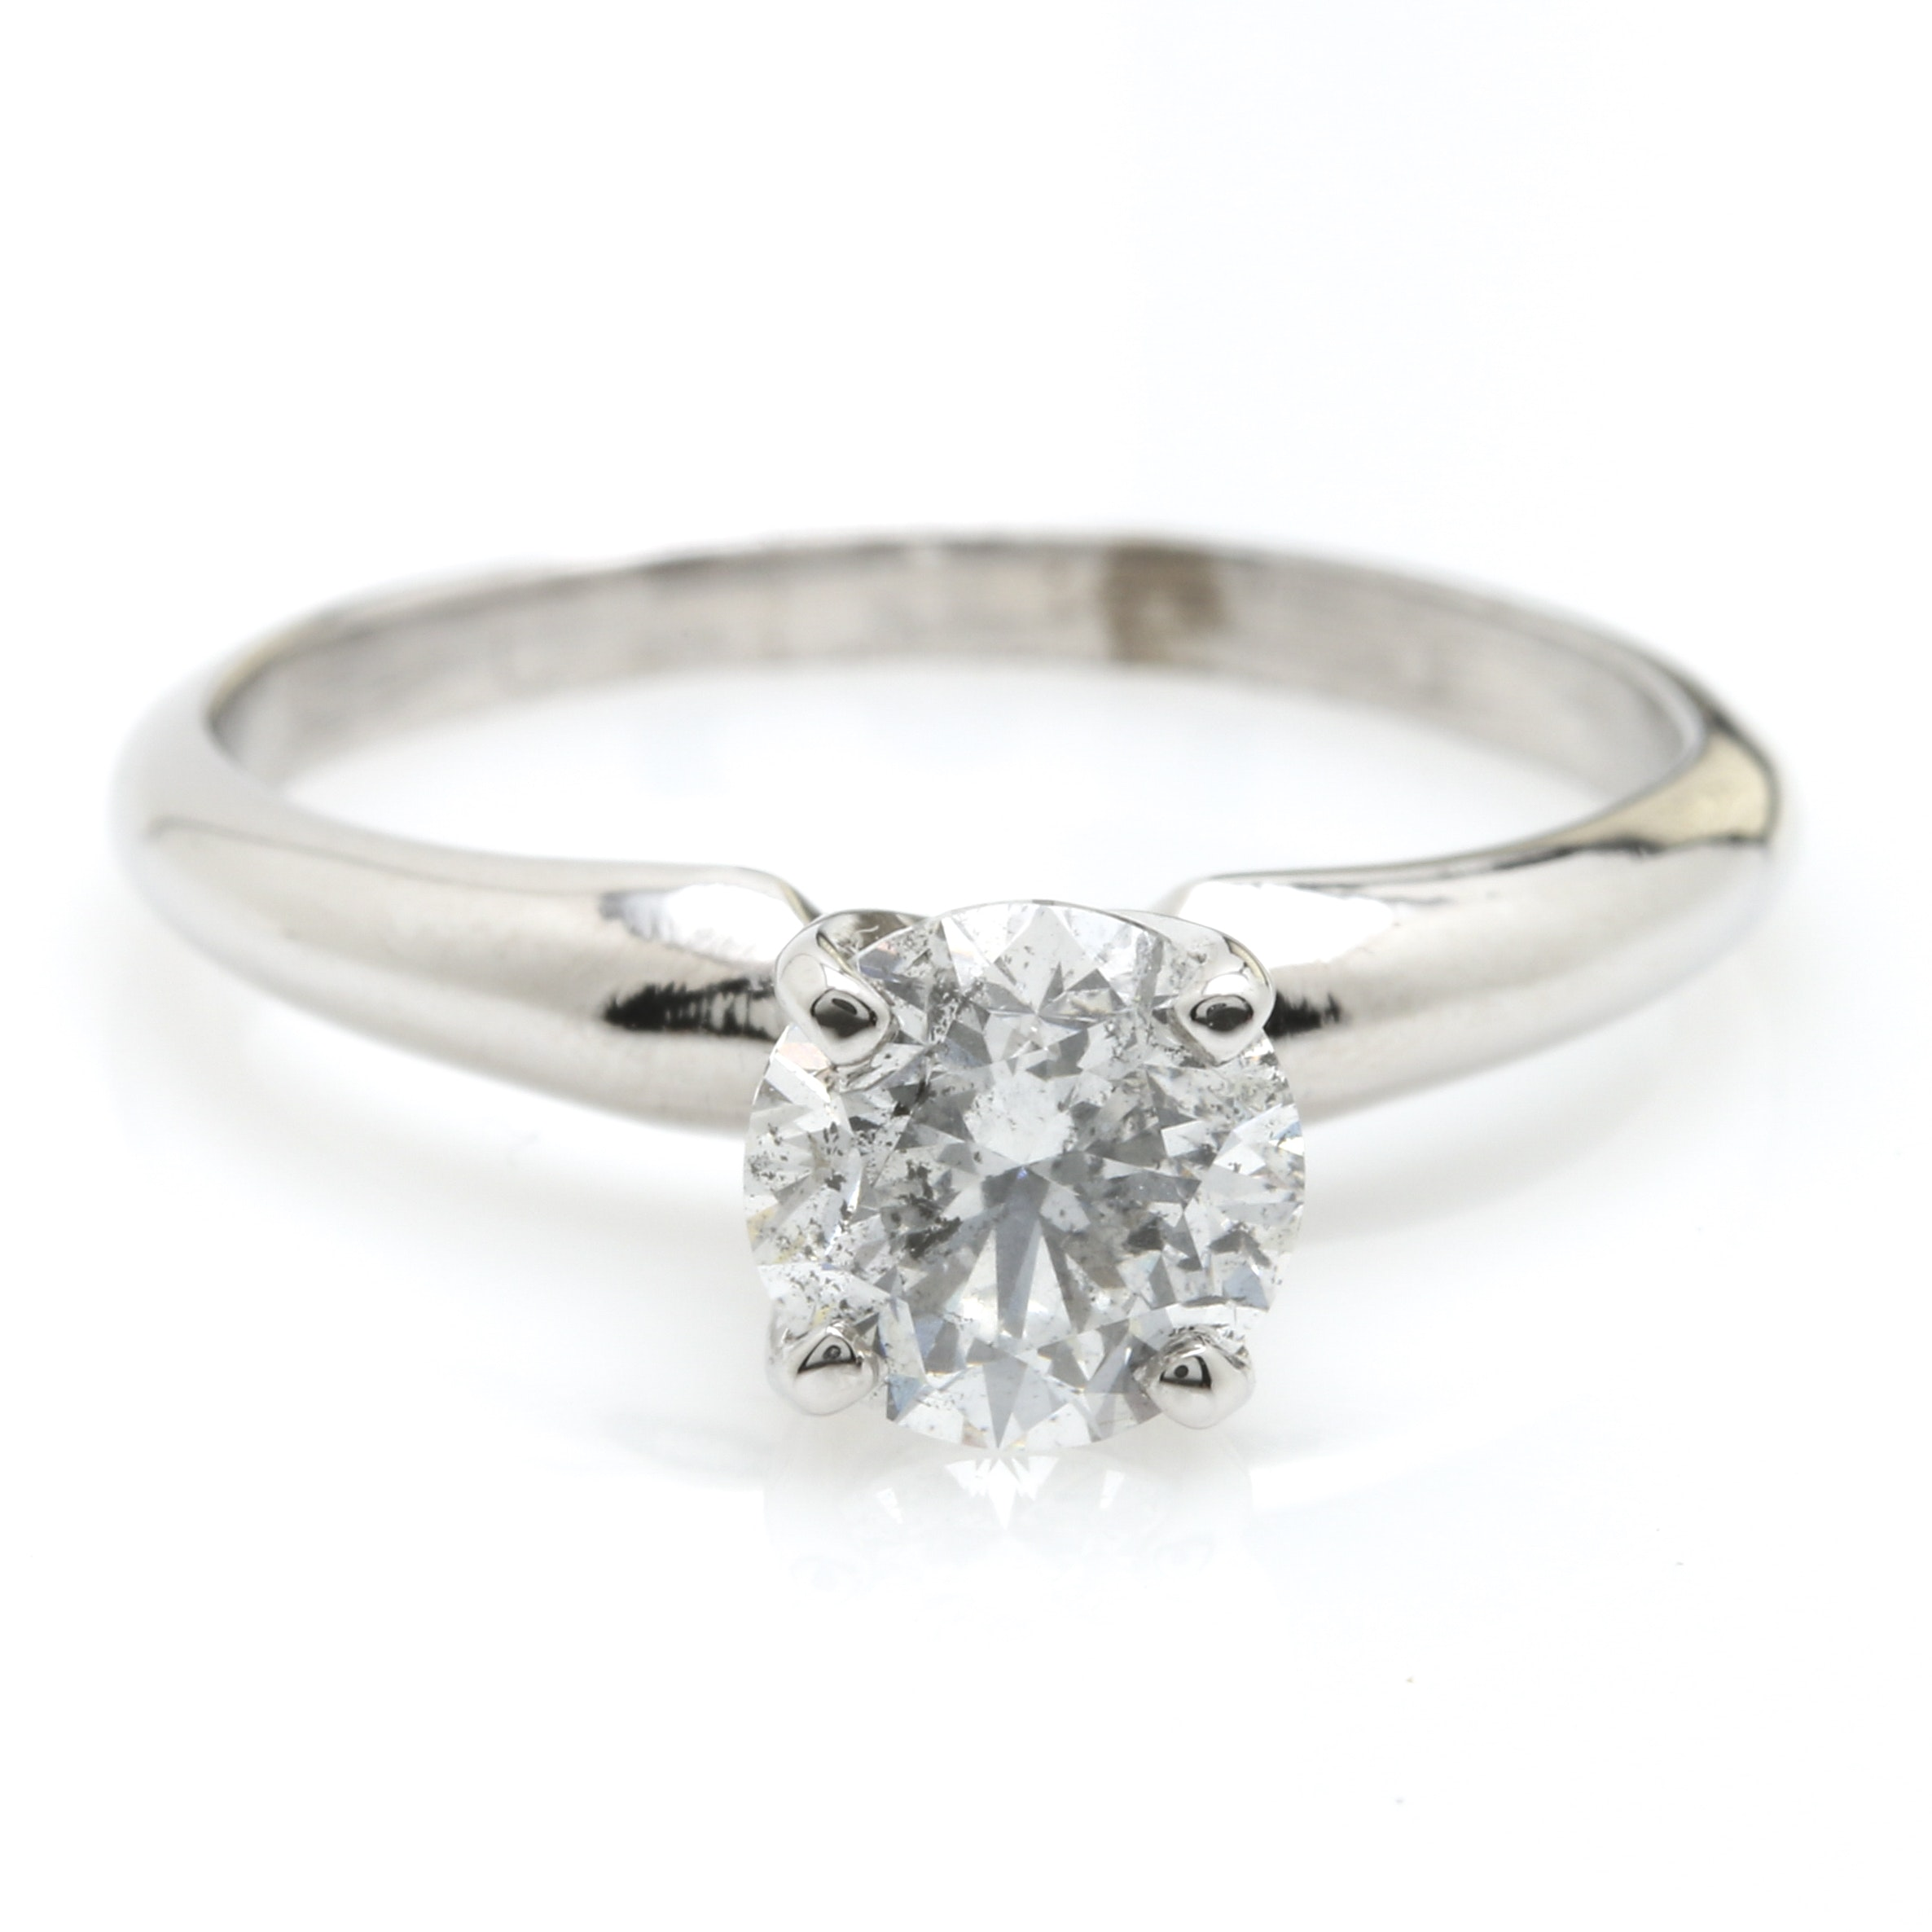 18K White Gold 0.95 CT Diamond Solitaire Ring